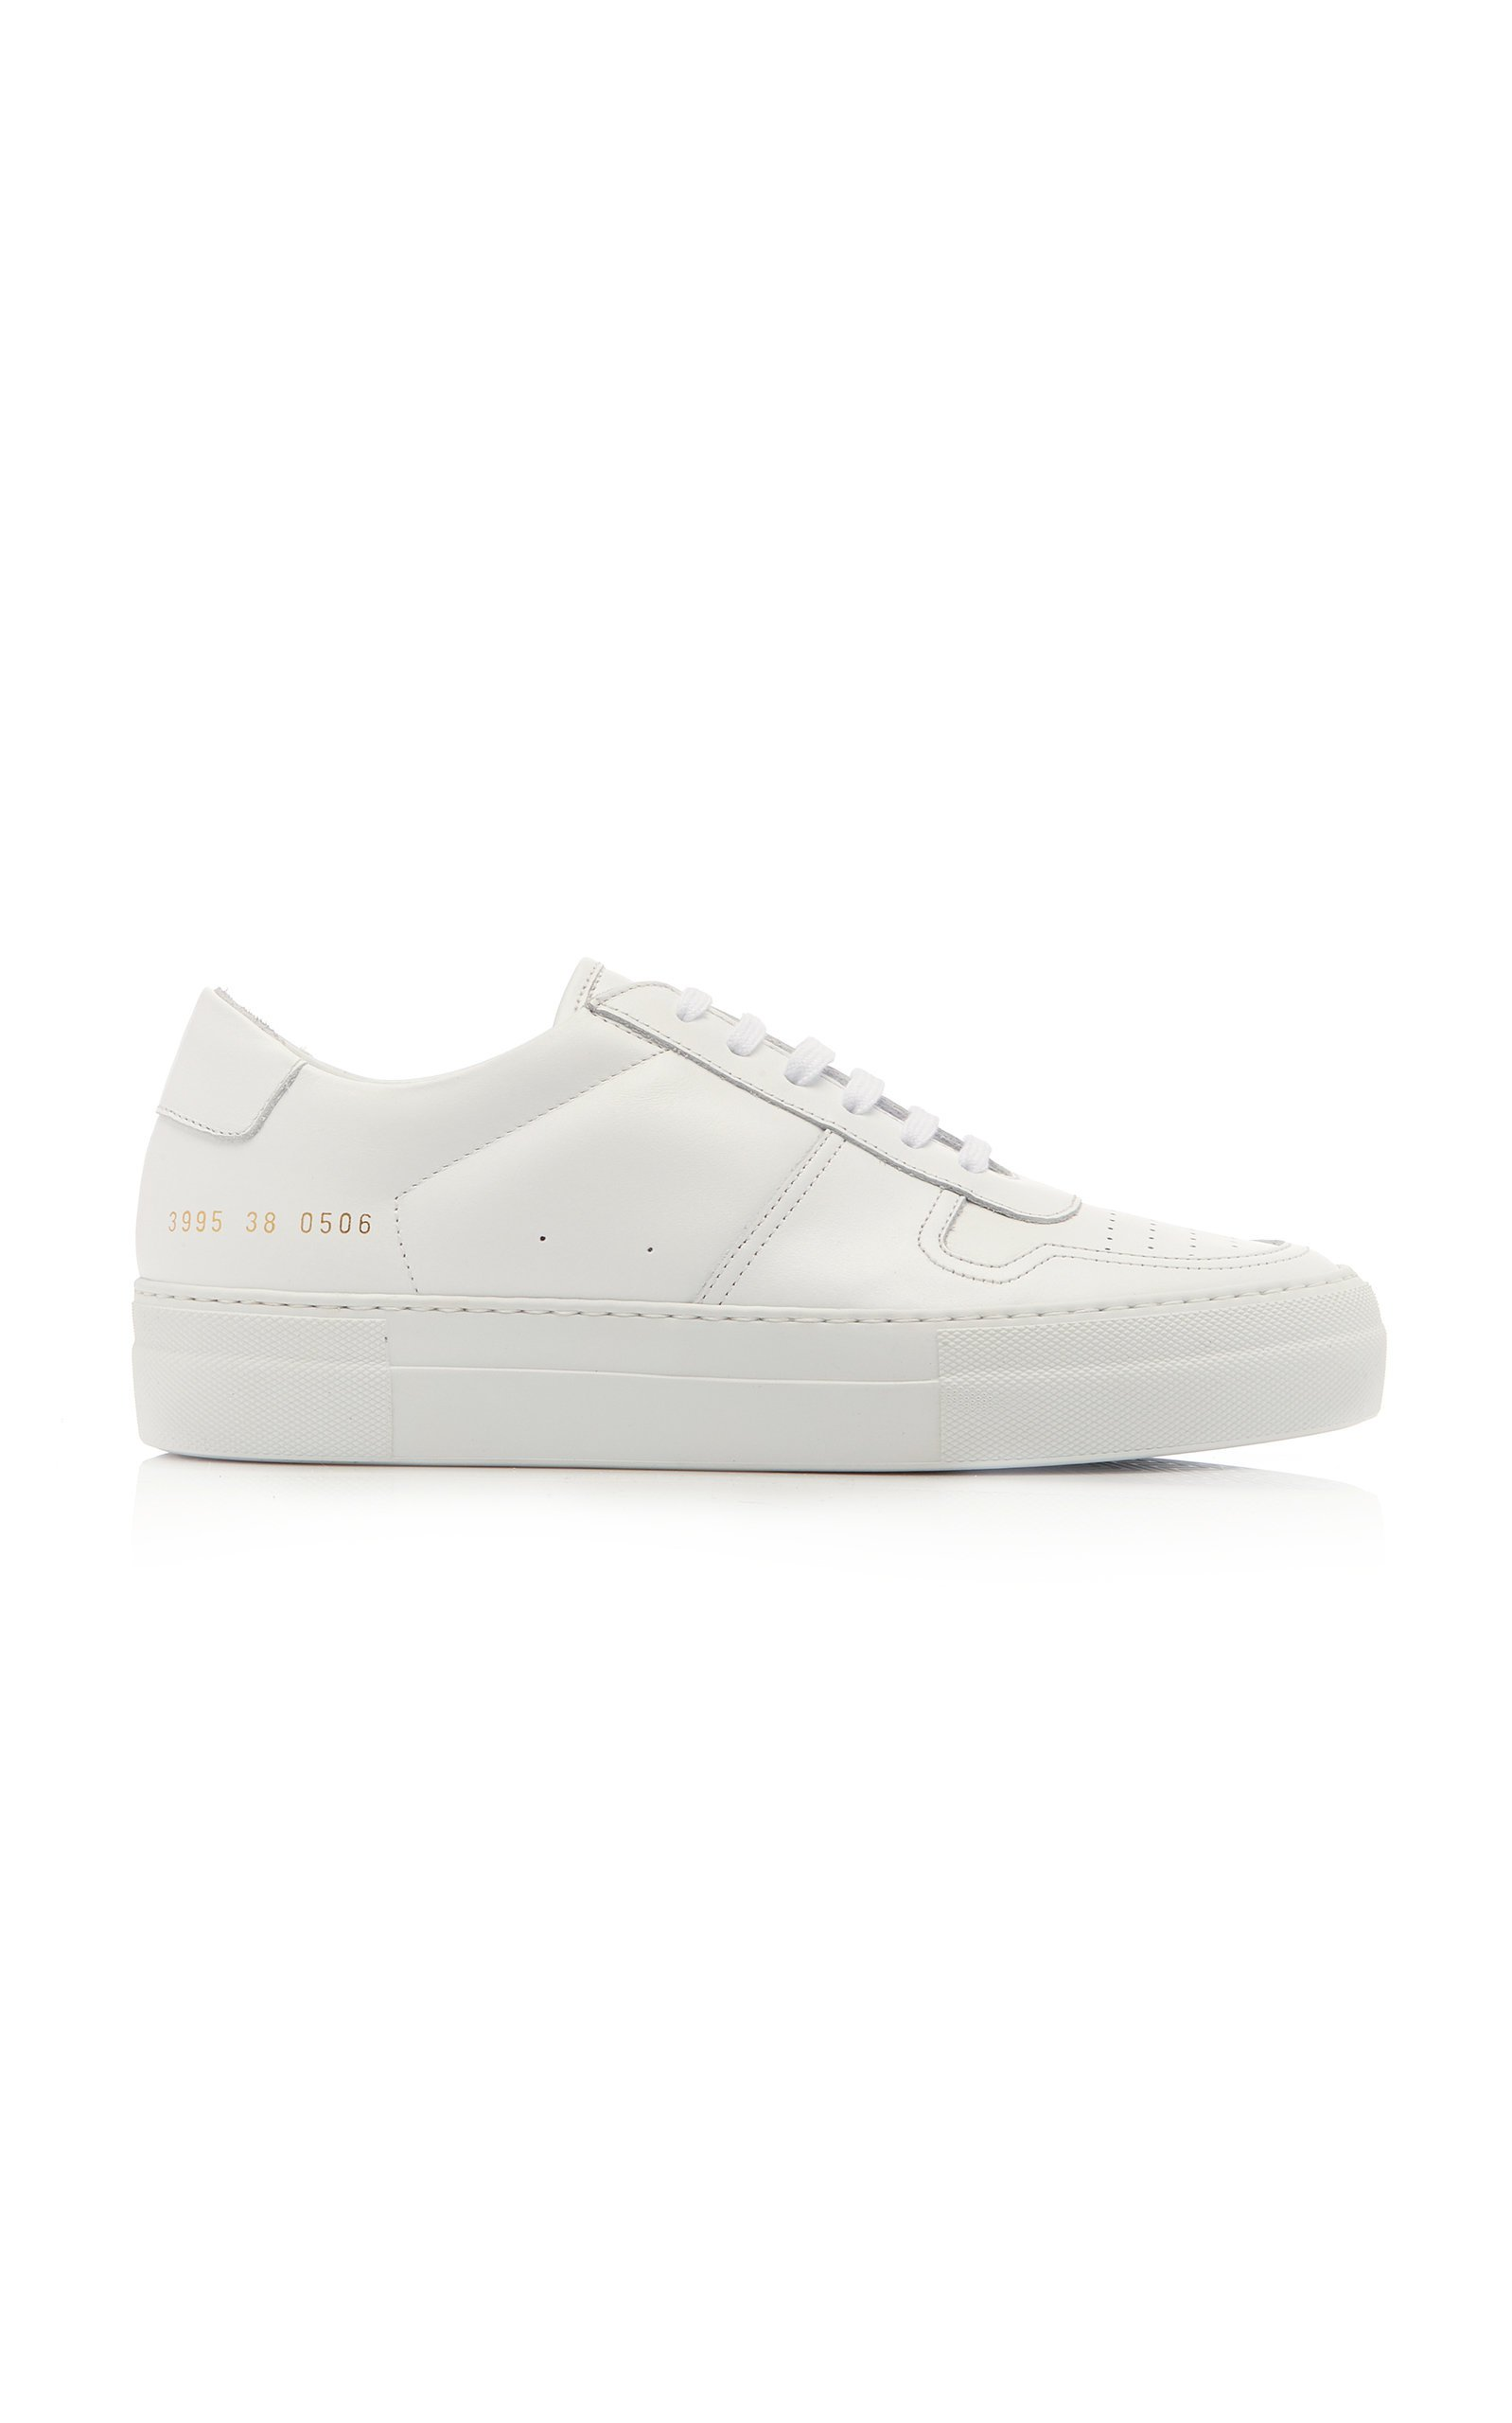 Bball Leather Sneakers by Common Projects | Moda Operandi